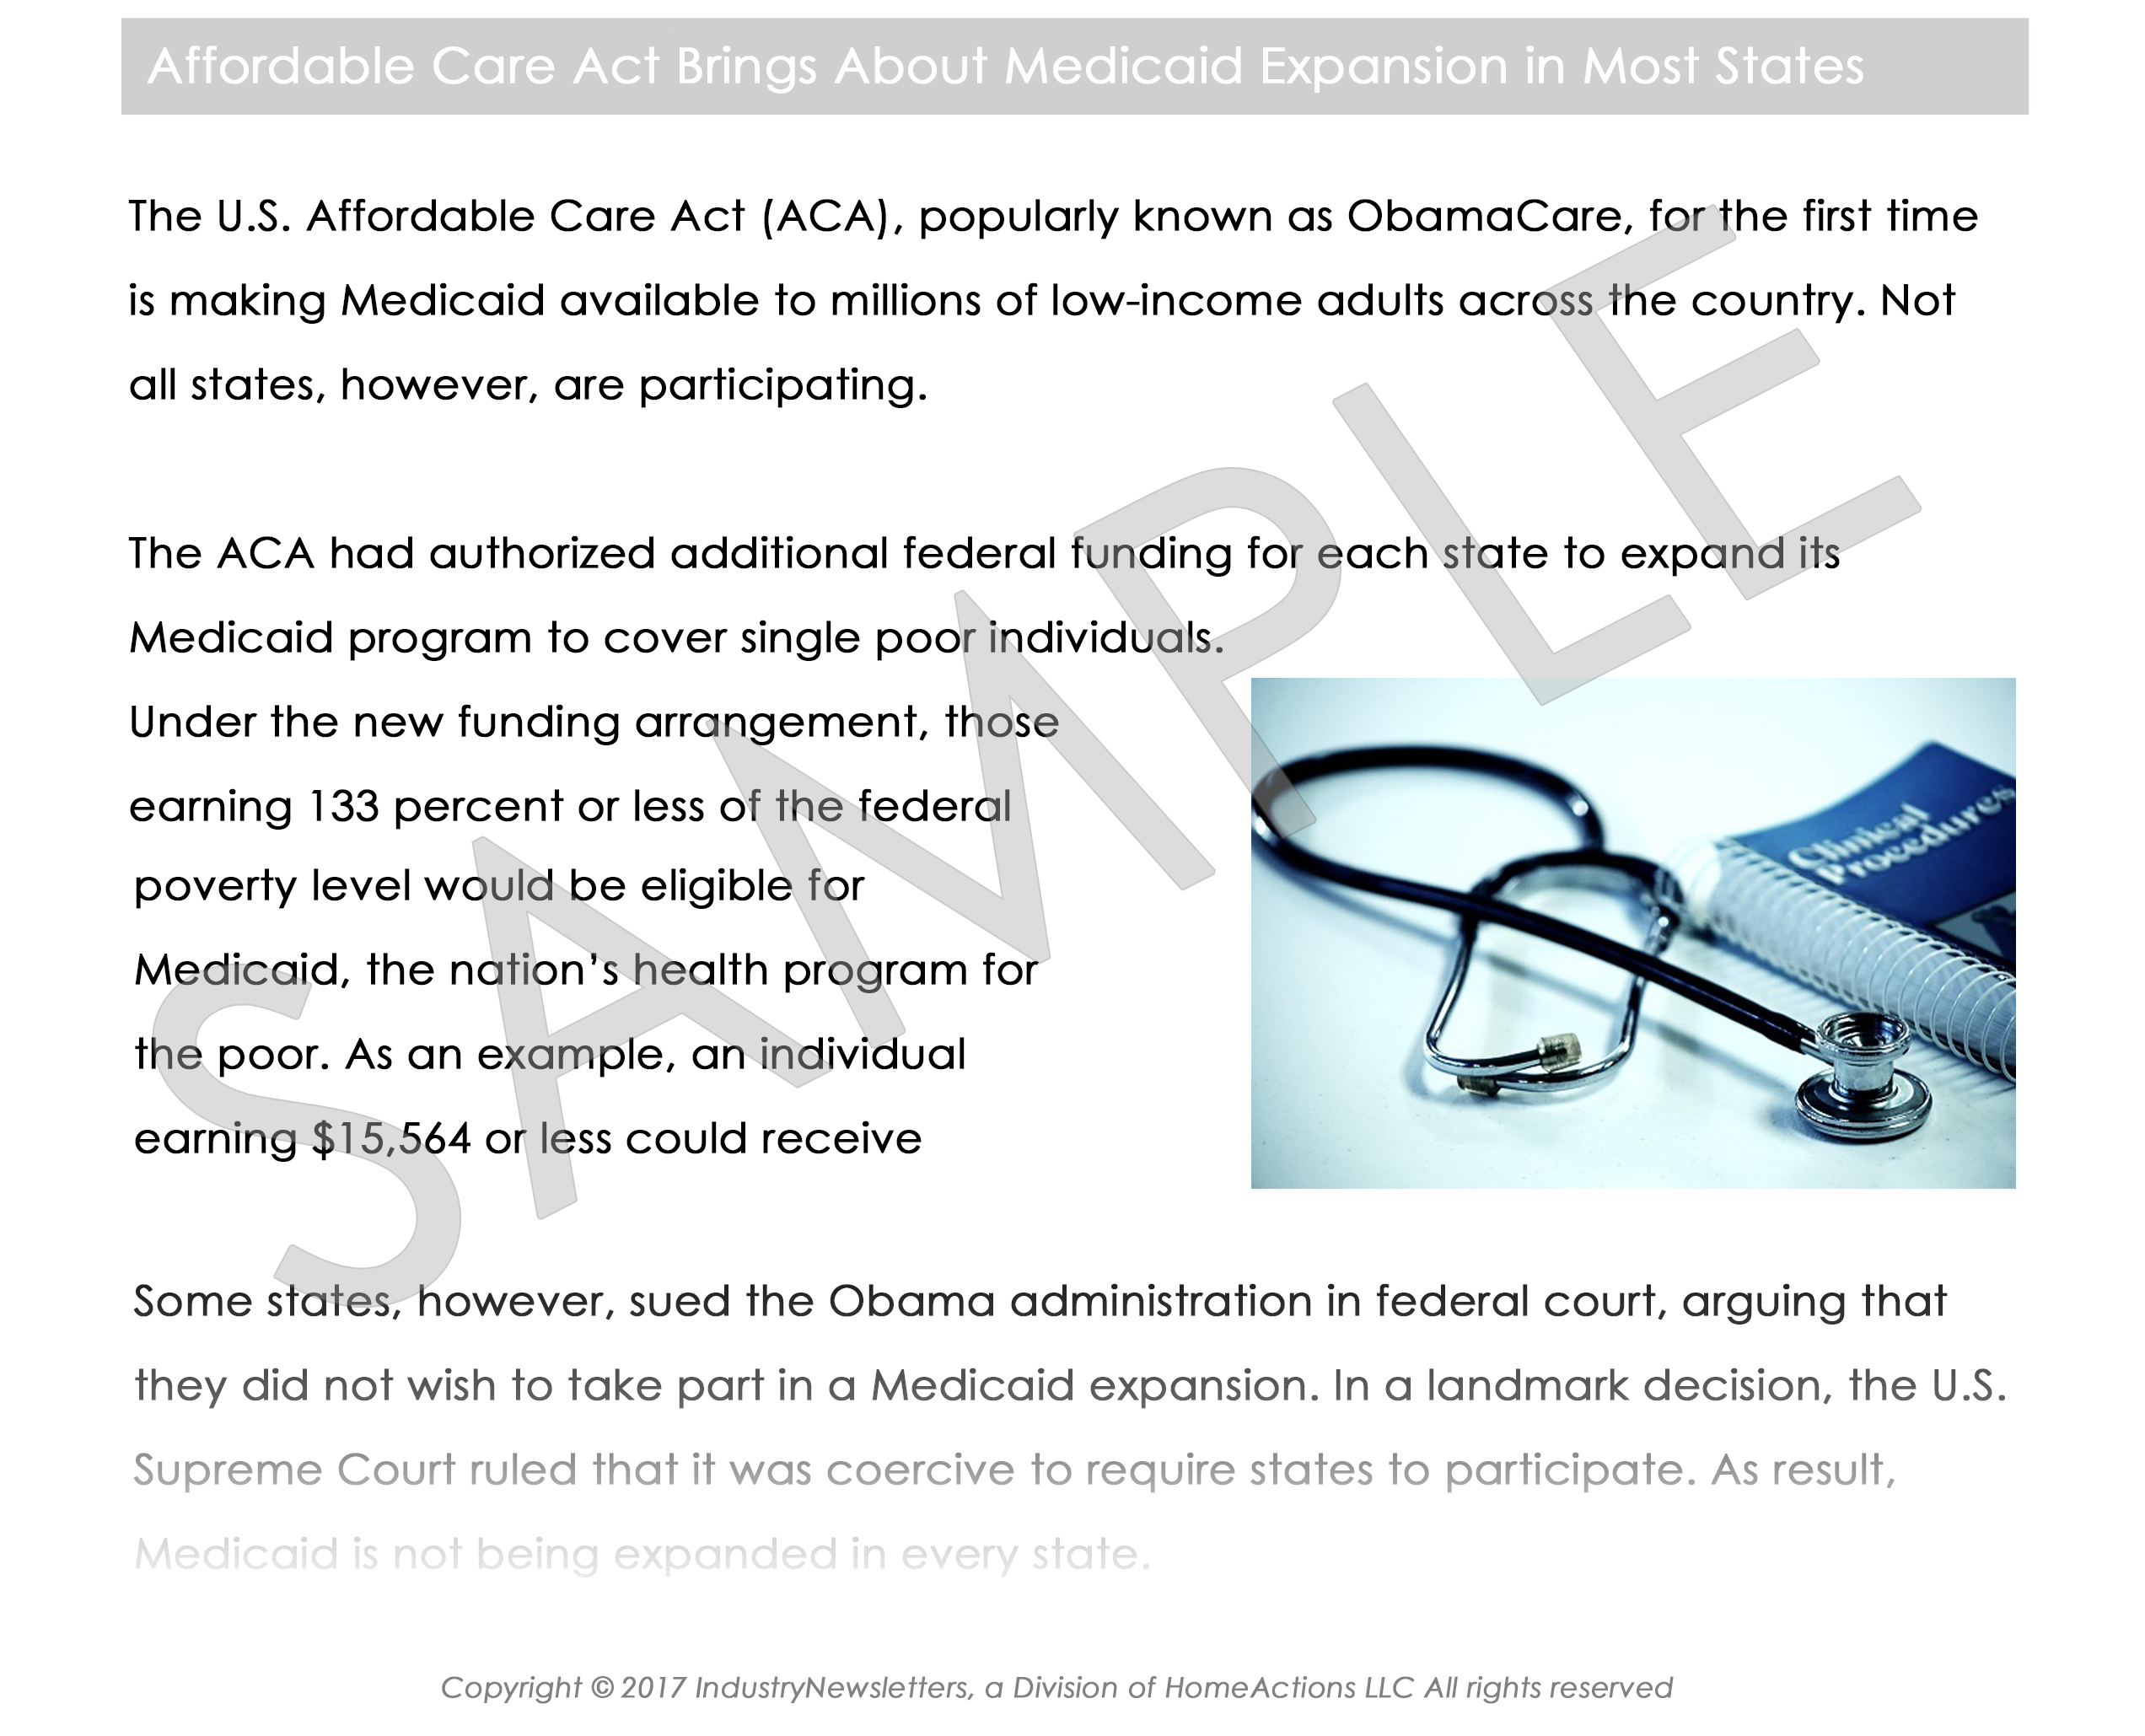 Legal Estate & Trust Affordable Care Act Article Preview For Your Email Newsletter